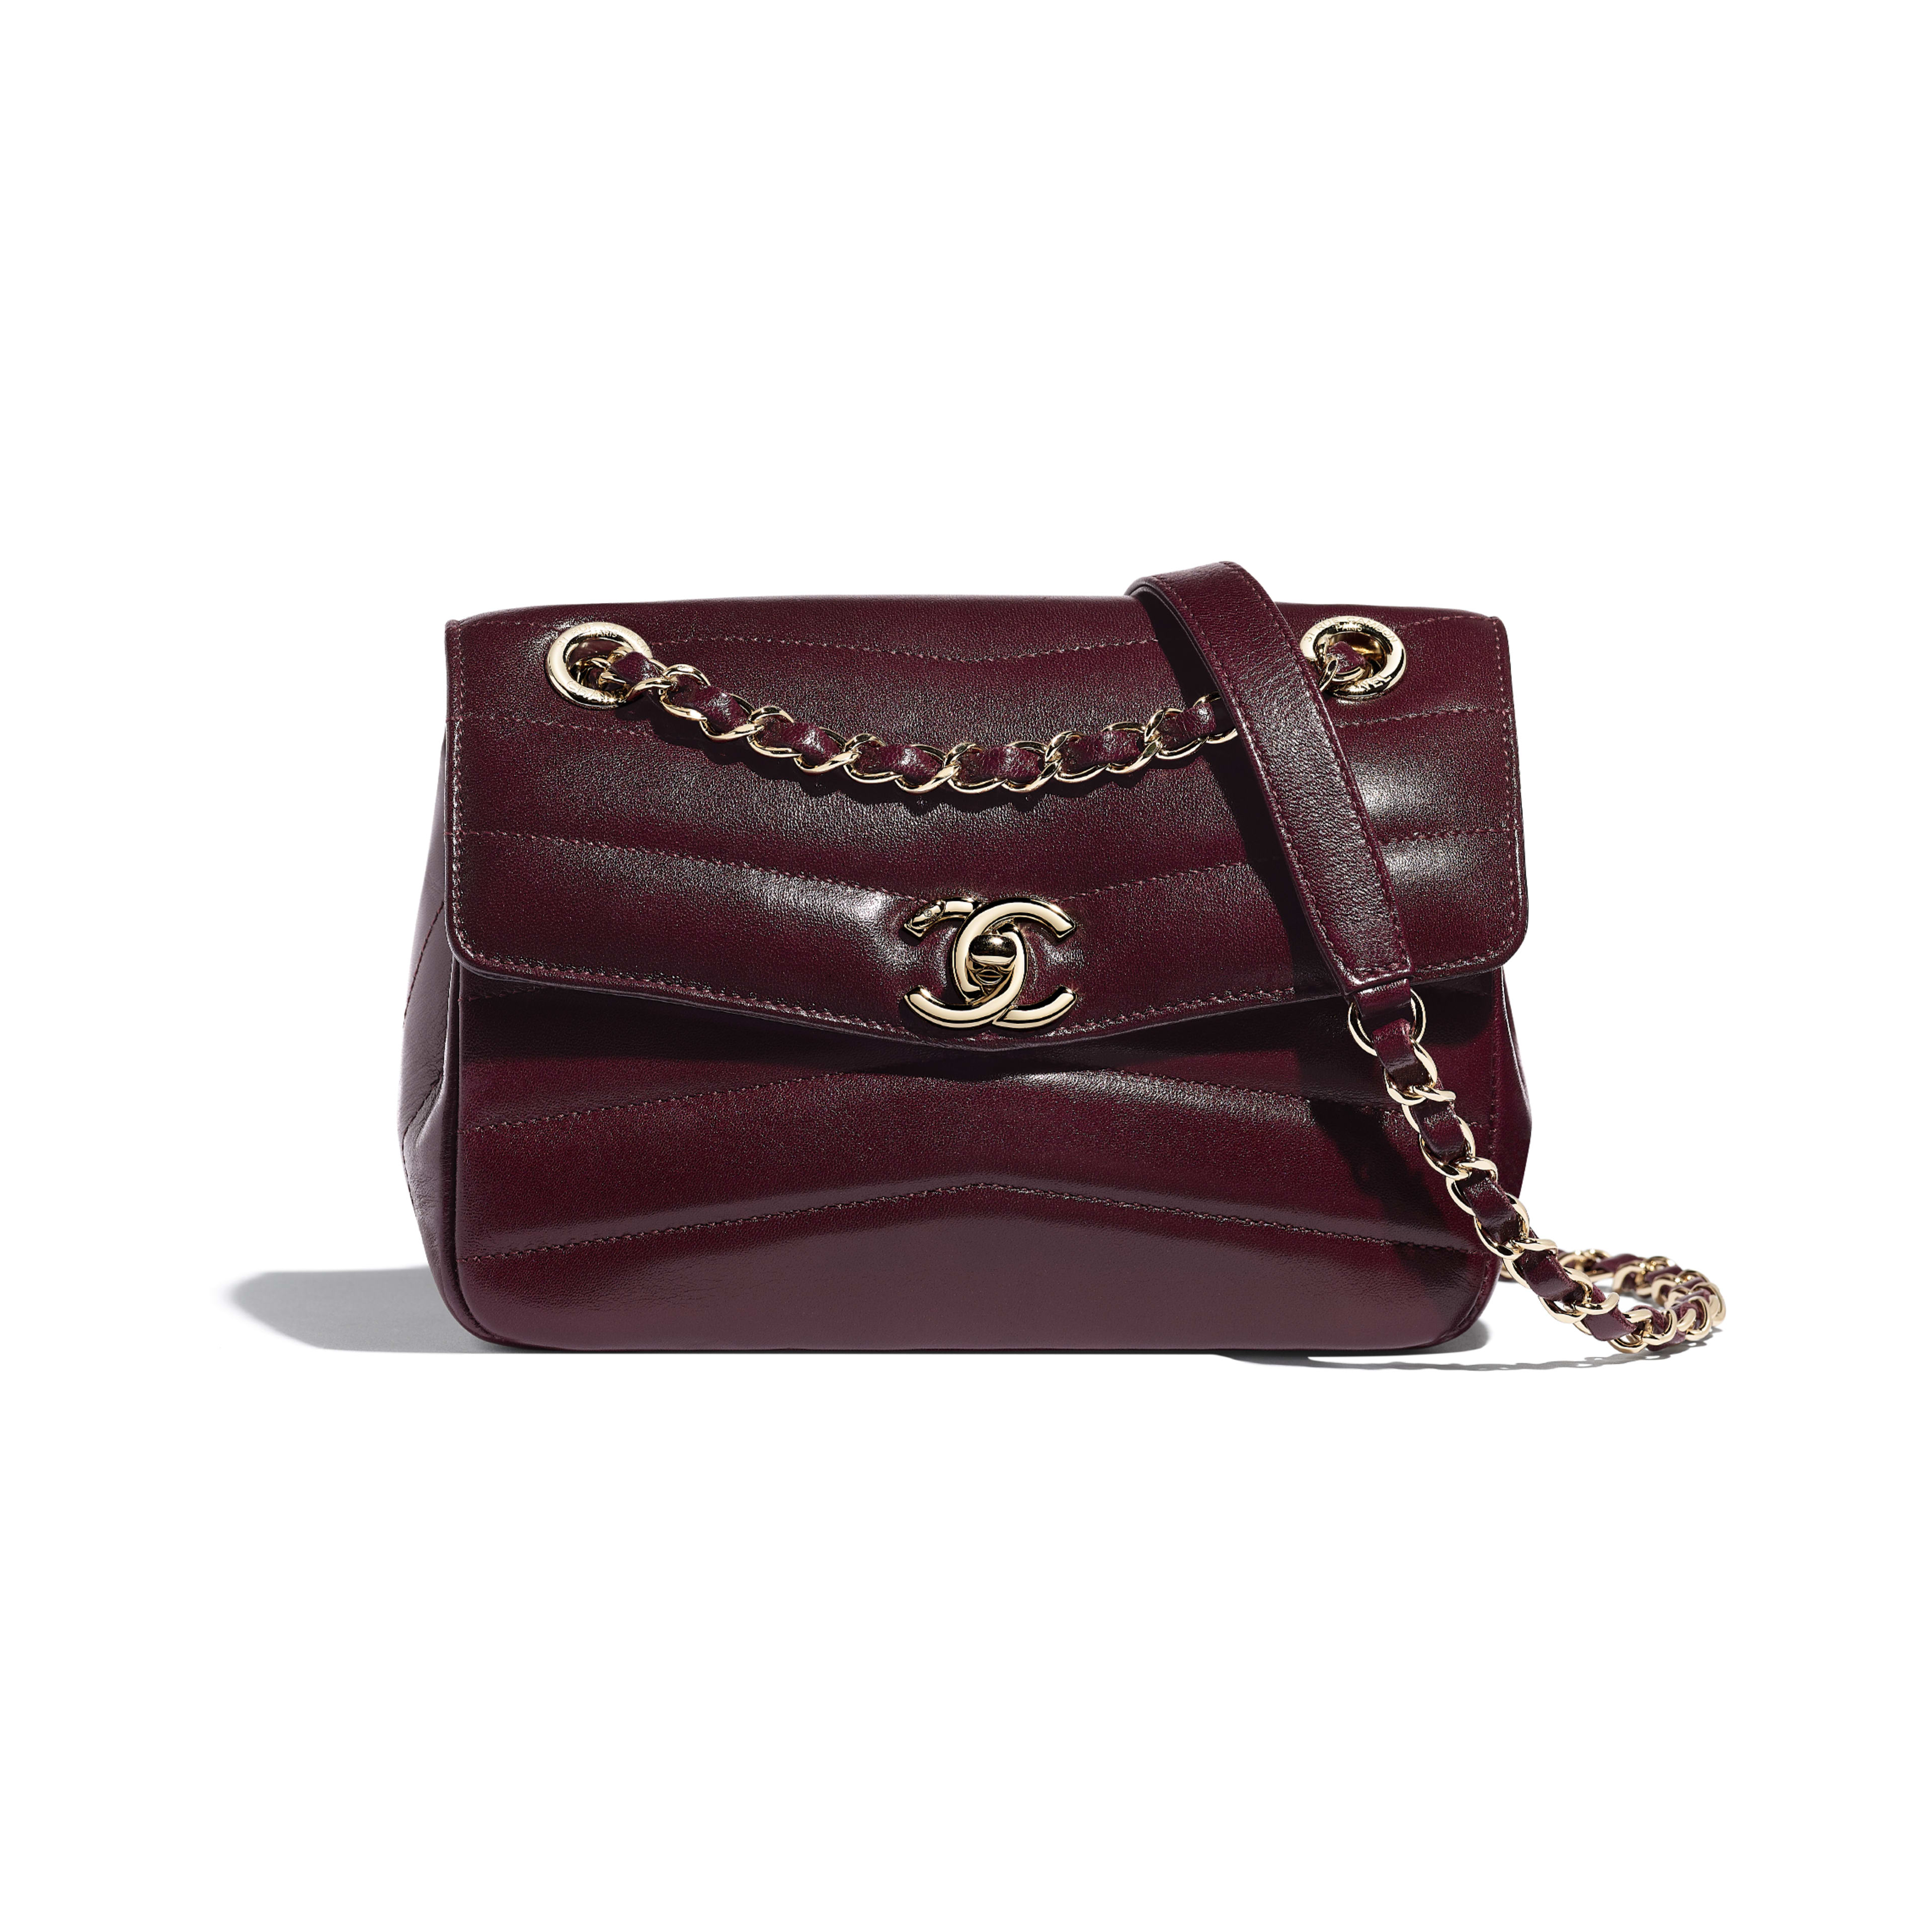 Flap Bag - Burgundy - Lambskin - Default view - see full sized version